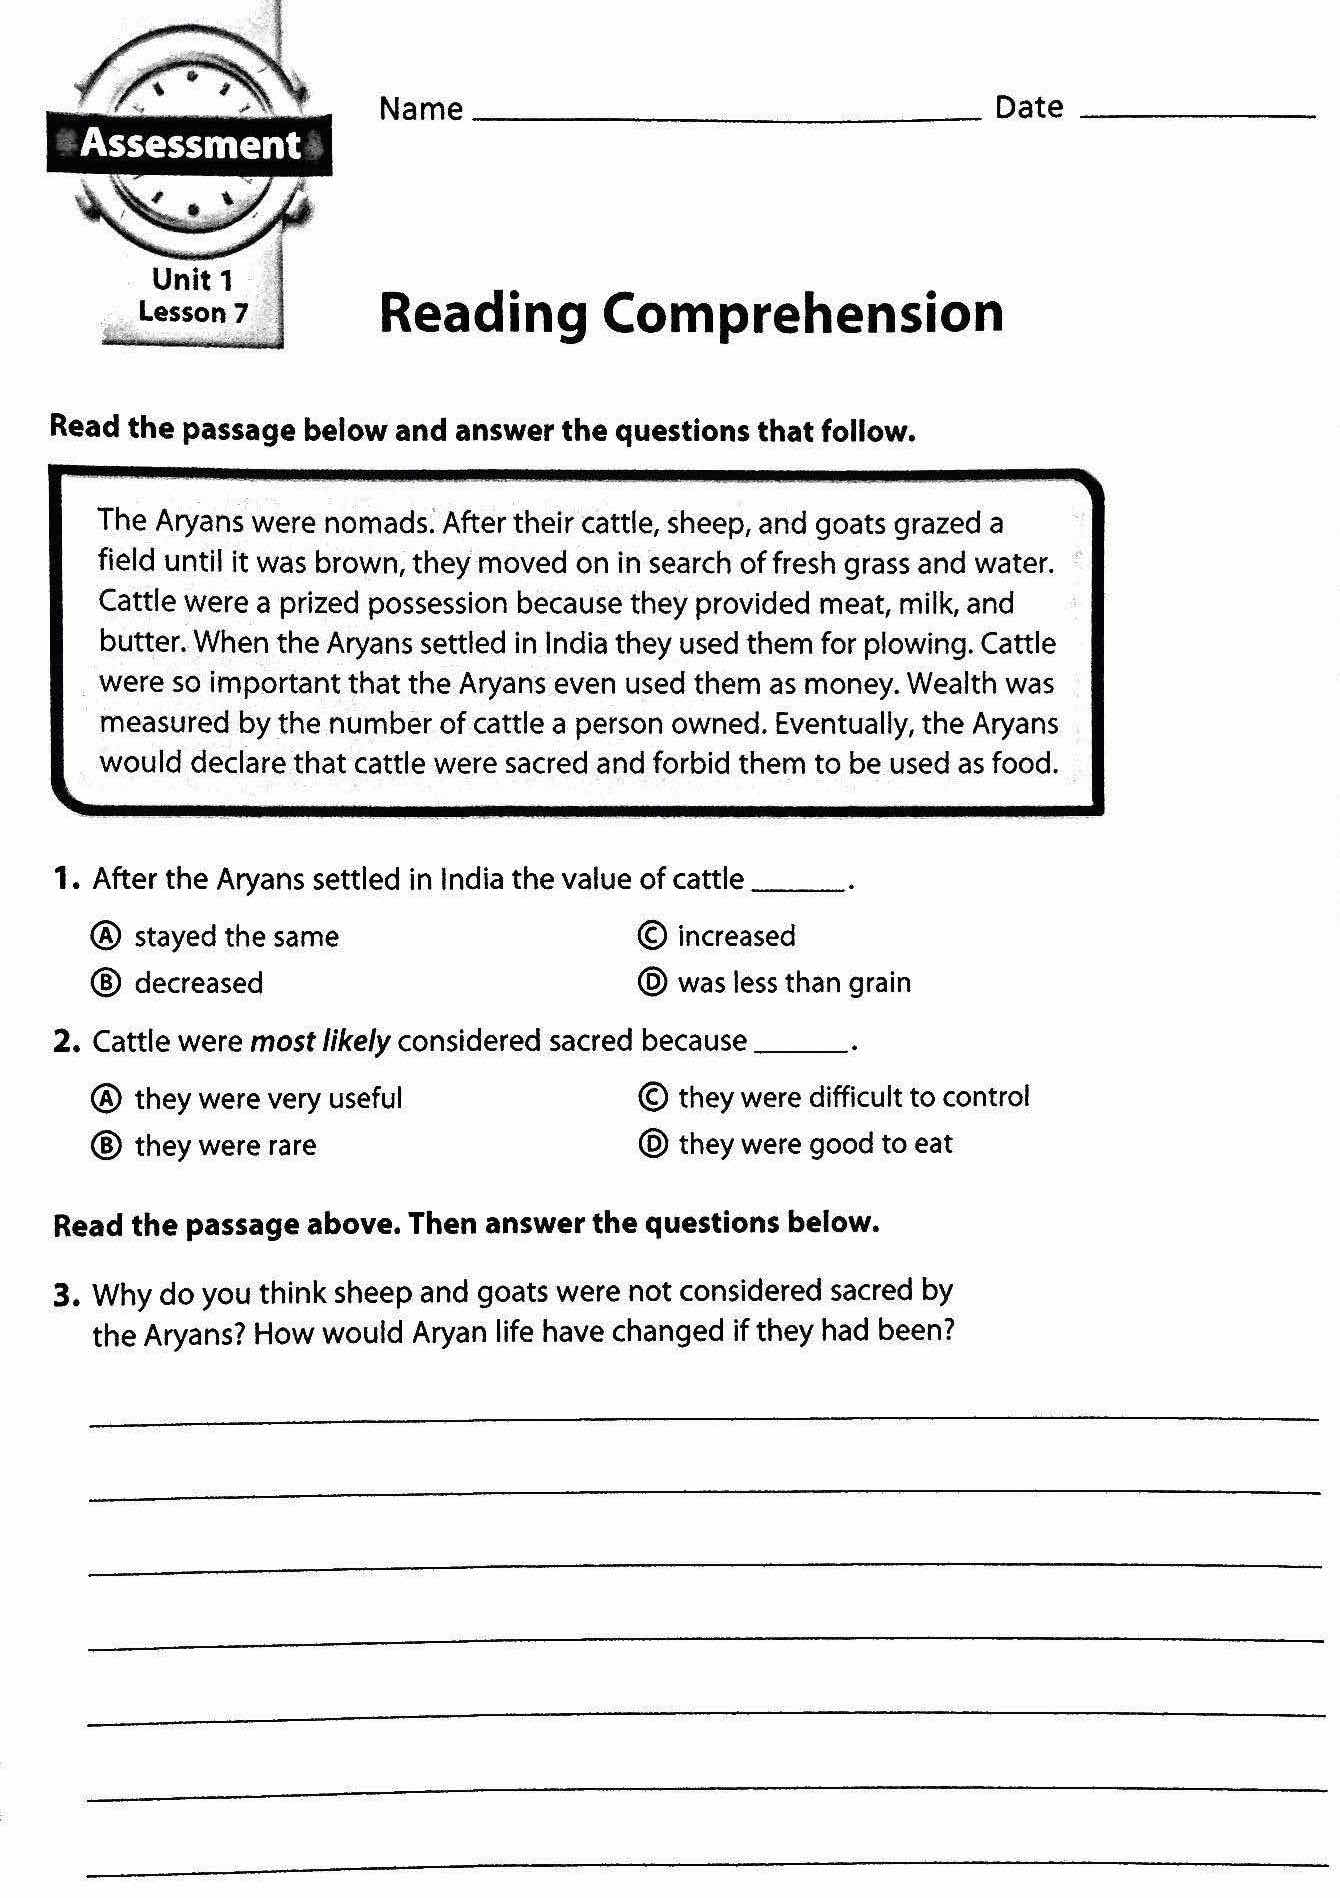 Worksheets 6th Grade Worksheets Reading reading comprehension worksheets for 6th grade free ch pter 4 ncient di mr proehl